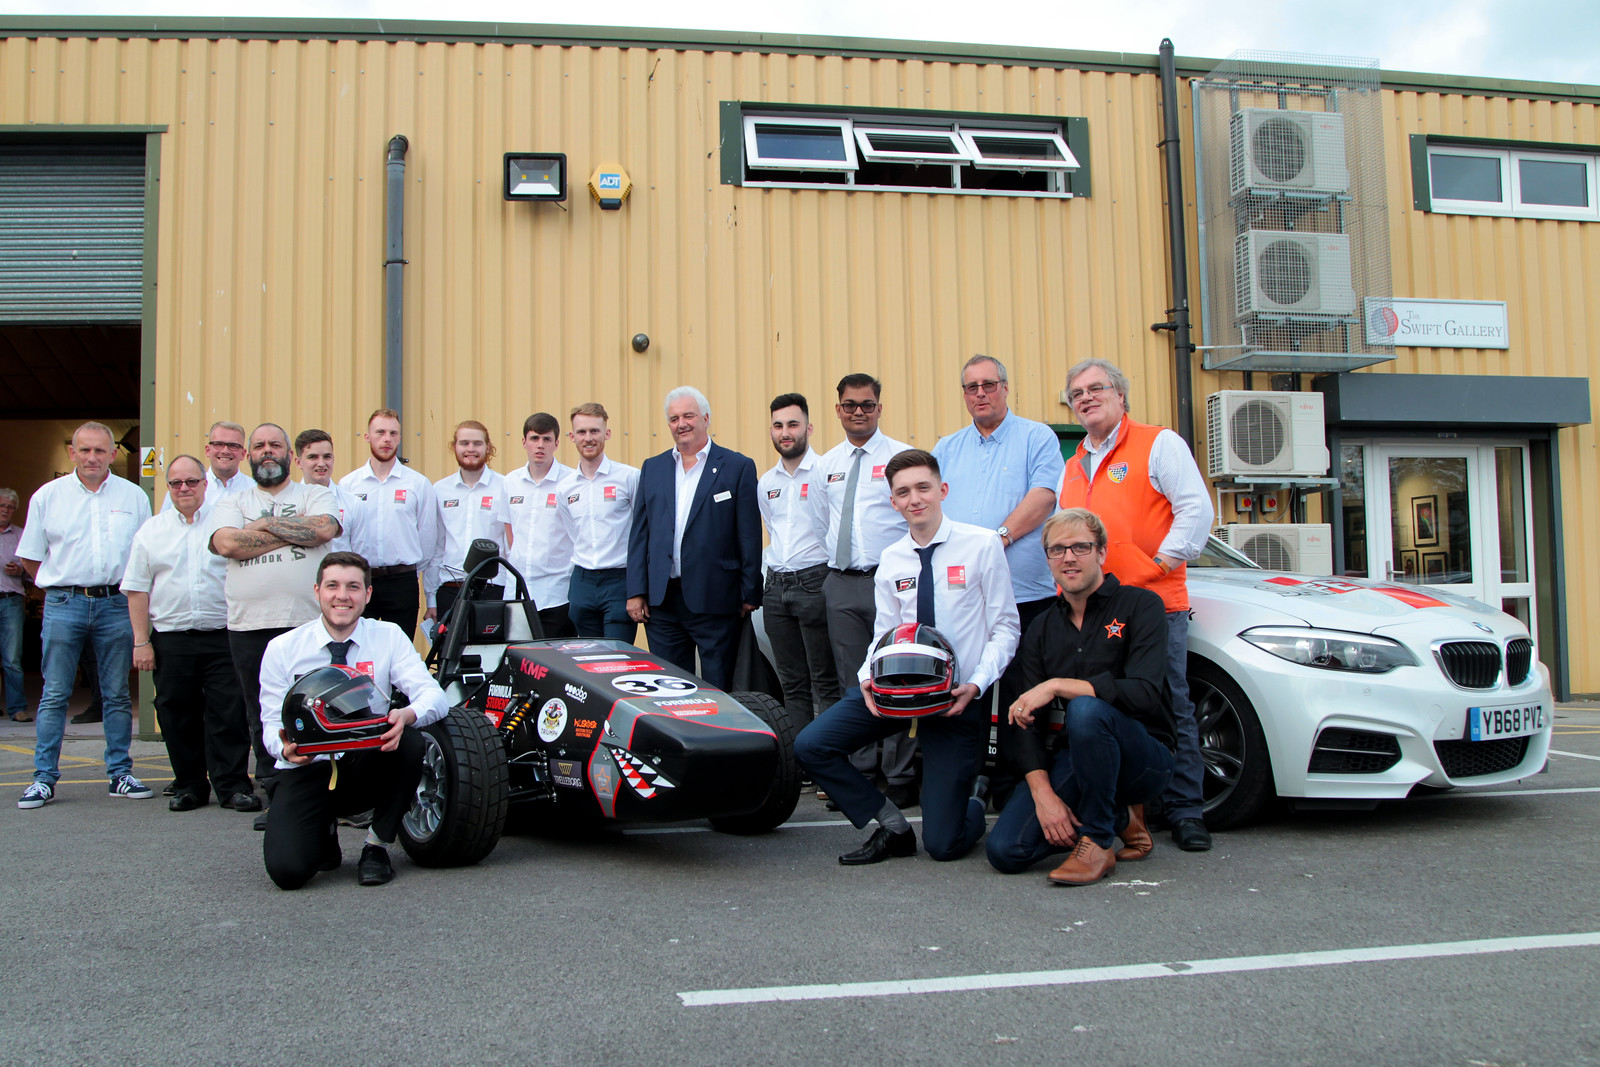 Formula Student at The Swift Gallery